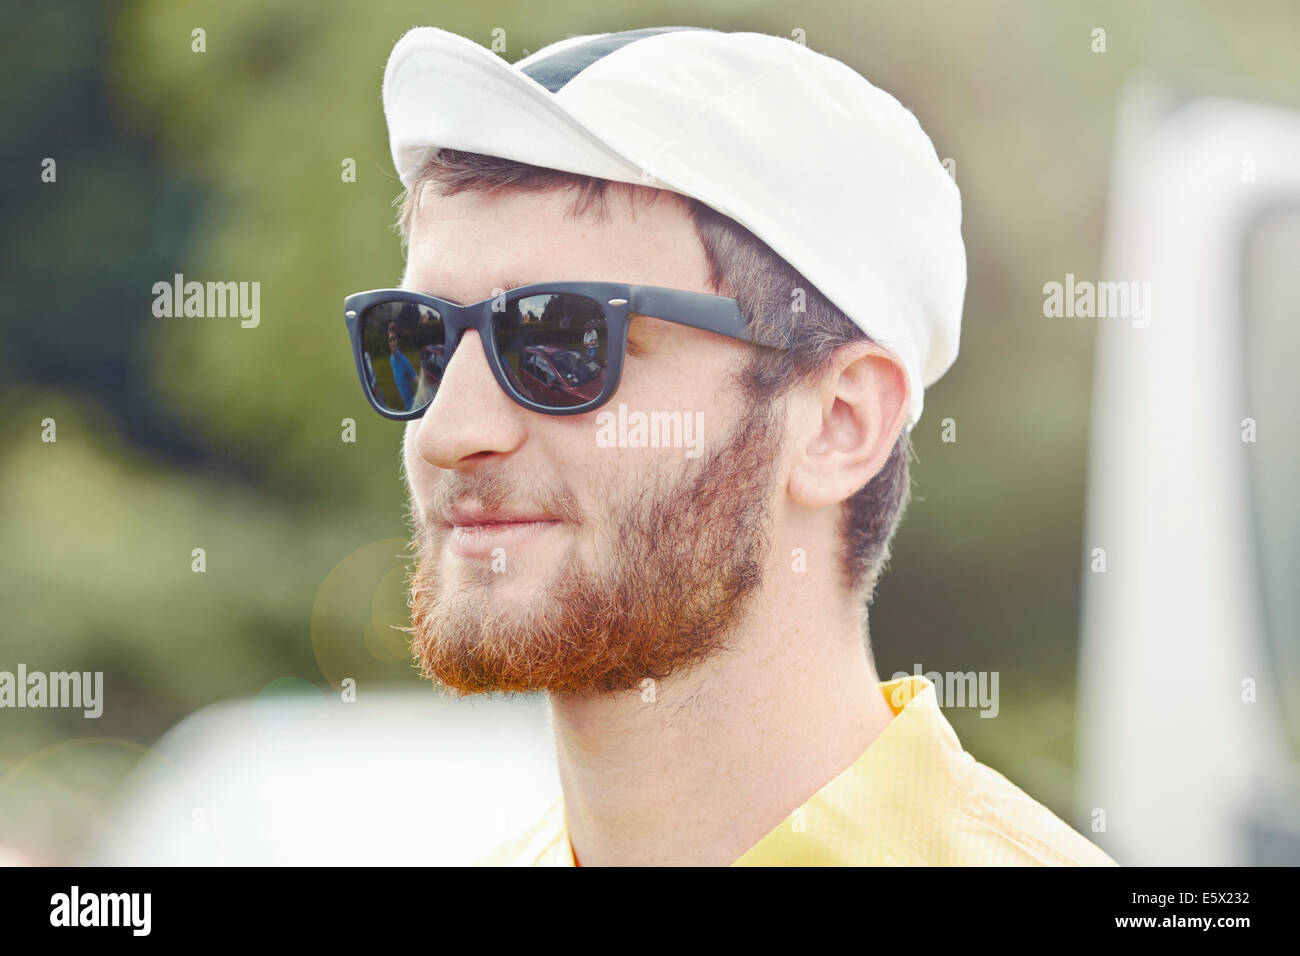 Cyclist wearing biking cap and sunglasses - Stock Image